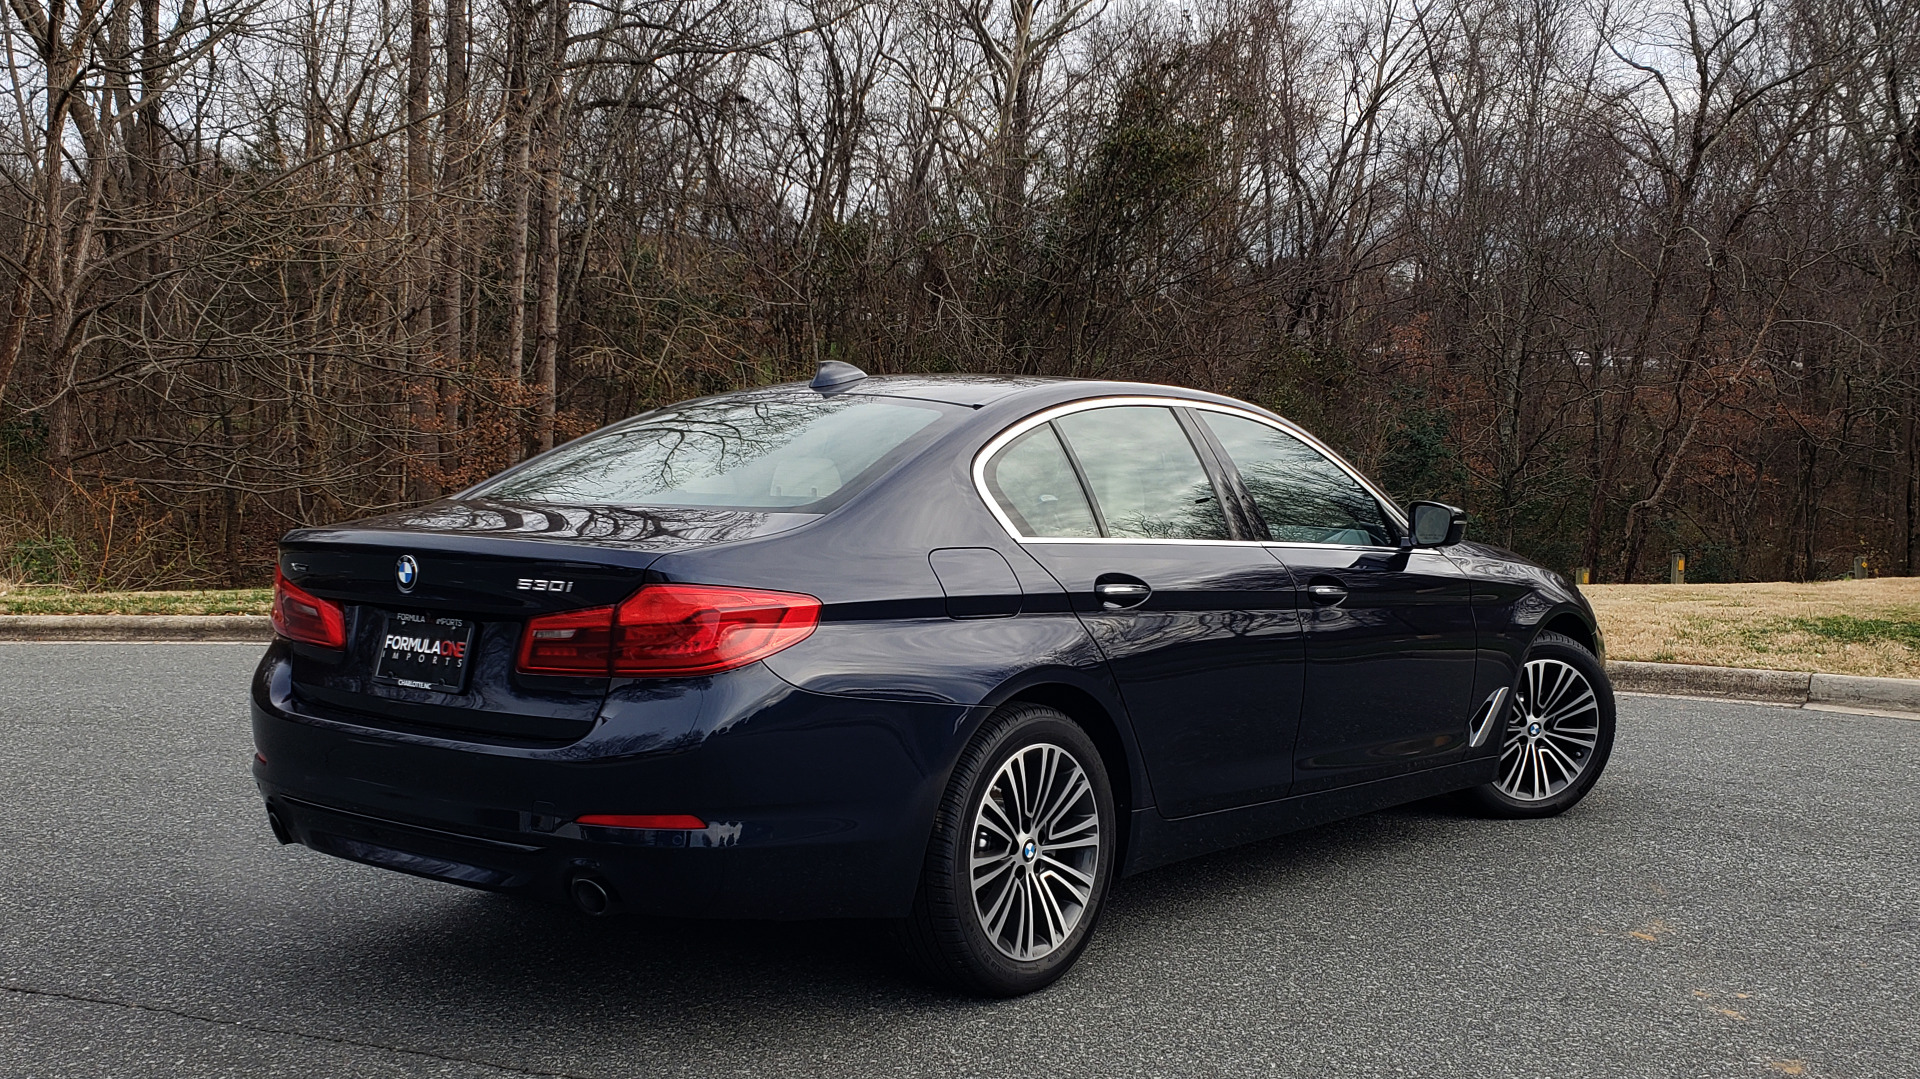 Used 2017 BMW 5 SERIES 530i XDRIVE / SPORTLINE / NAV / SNRF / HTD STS / REARVIEW for sale Sold at Formula Imports in Charlotte NC 28227 10